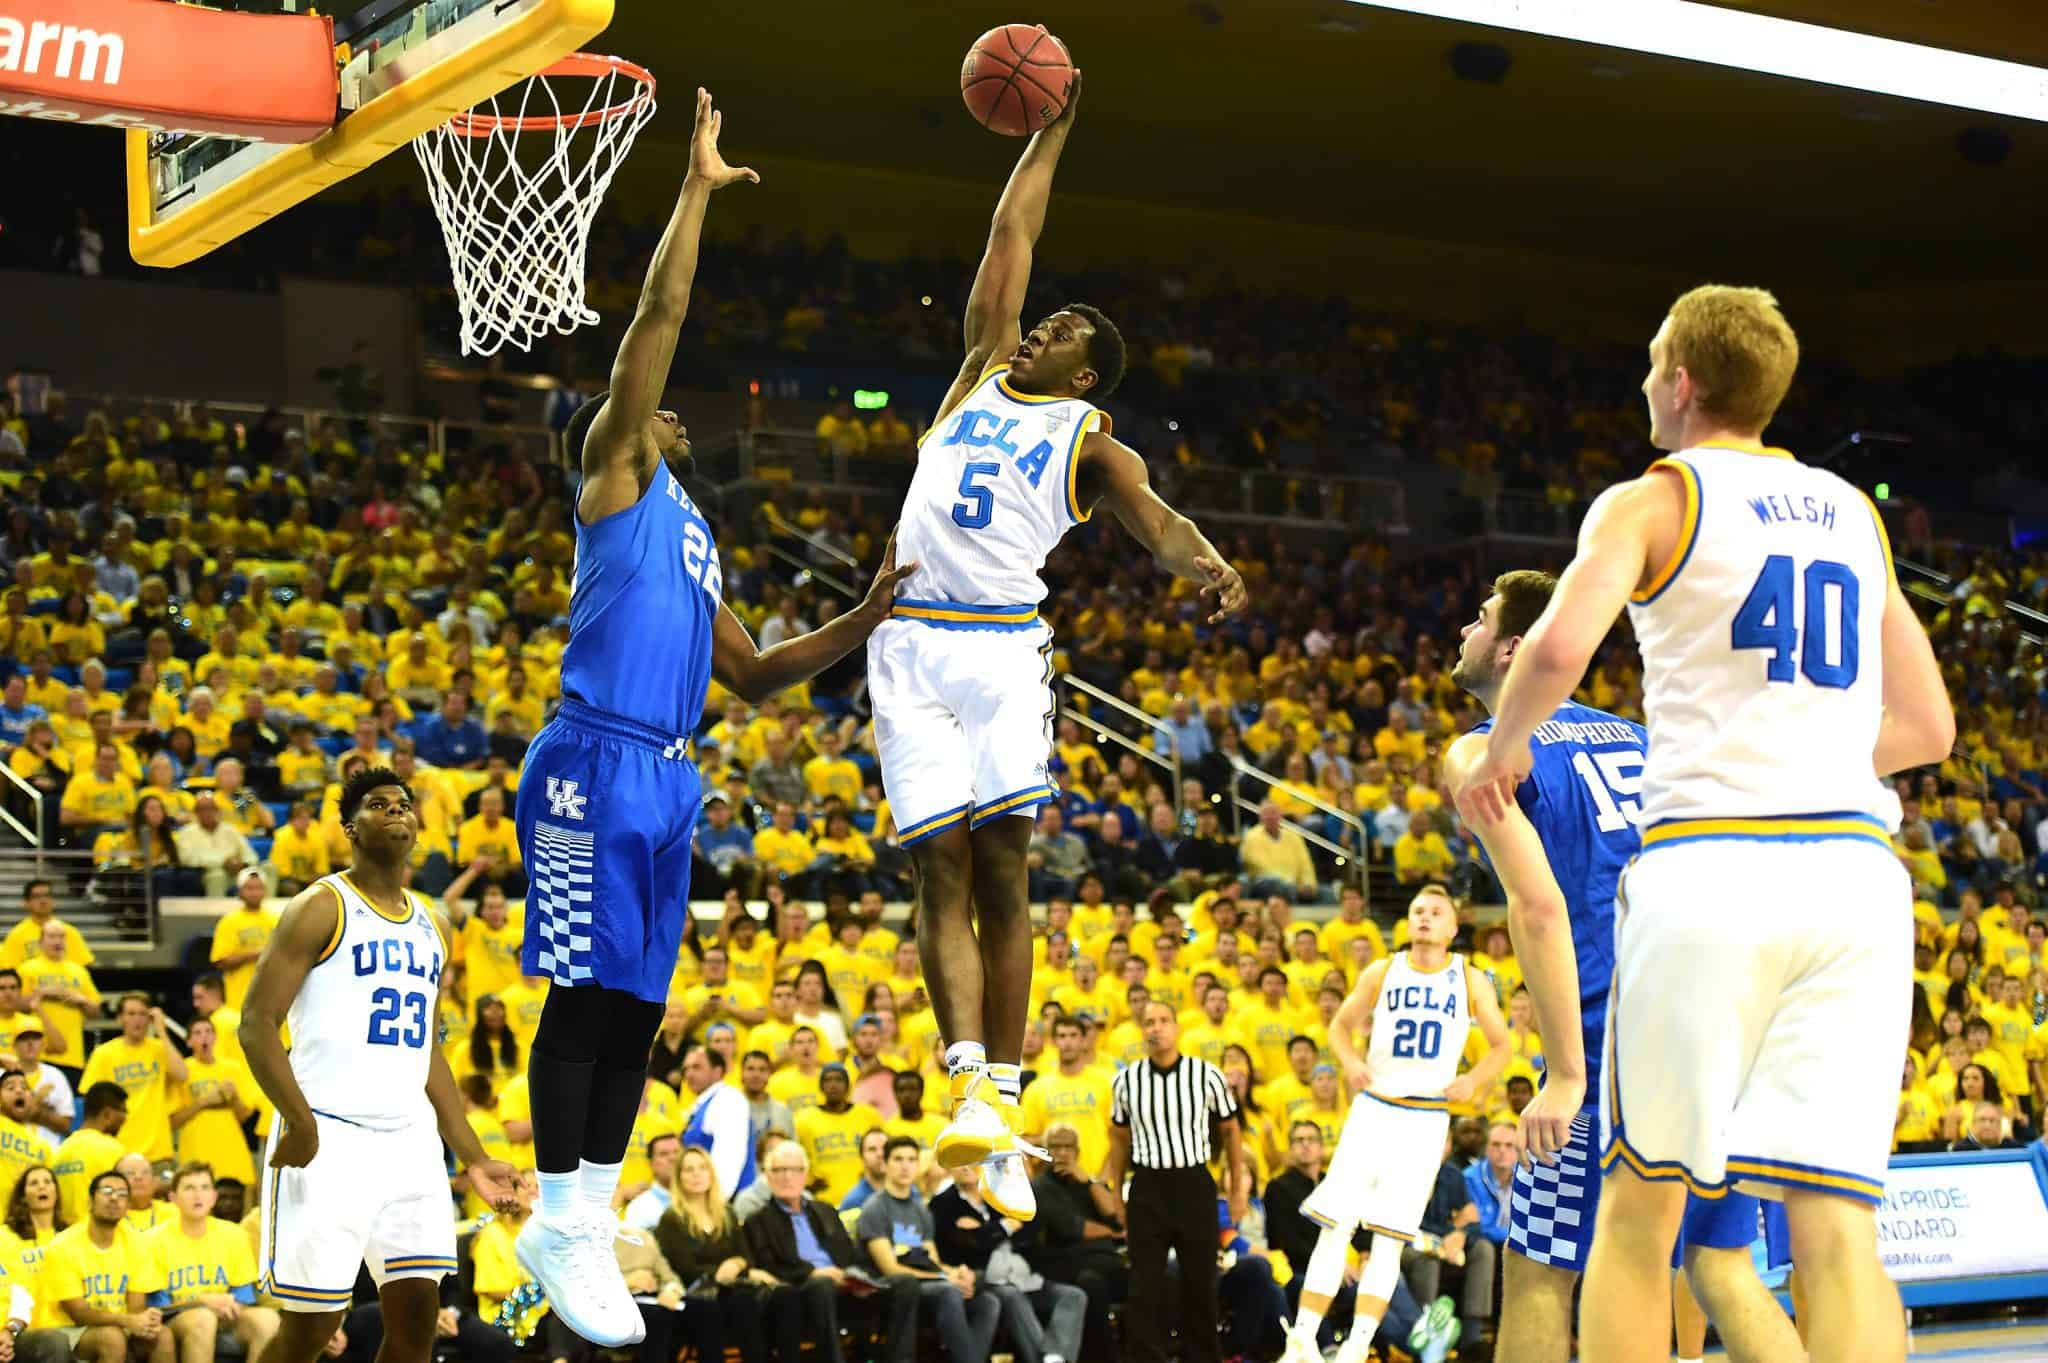 Kentucky vs UCLA